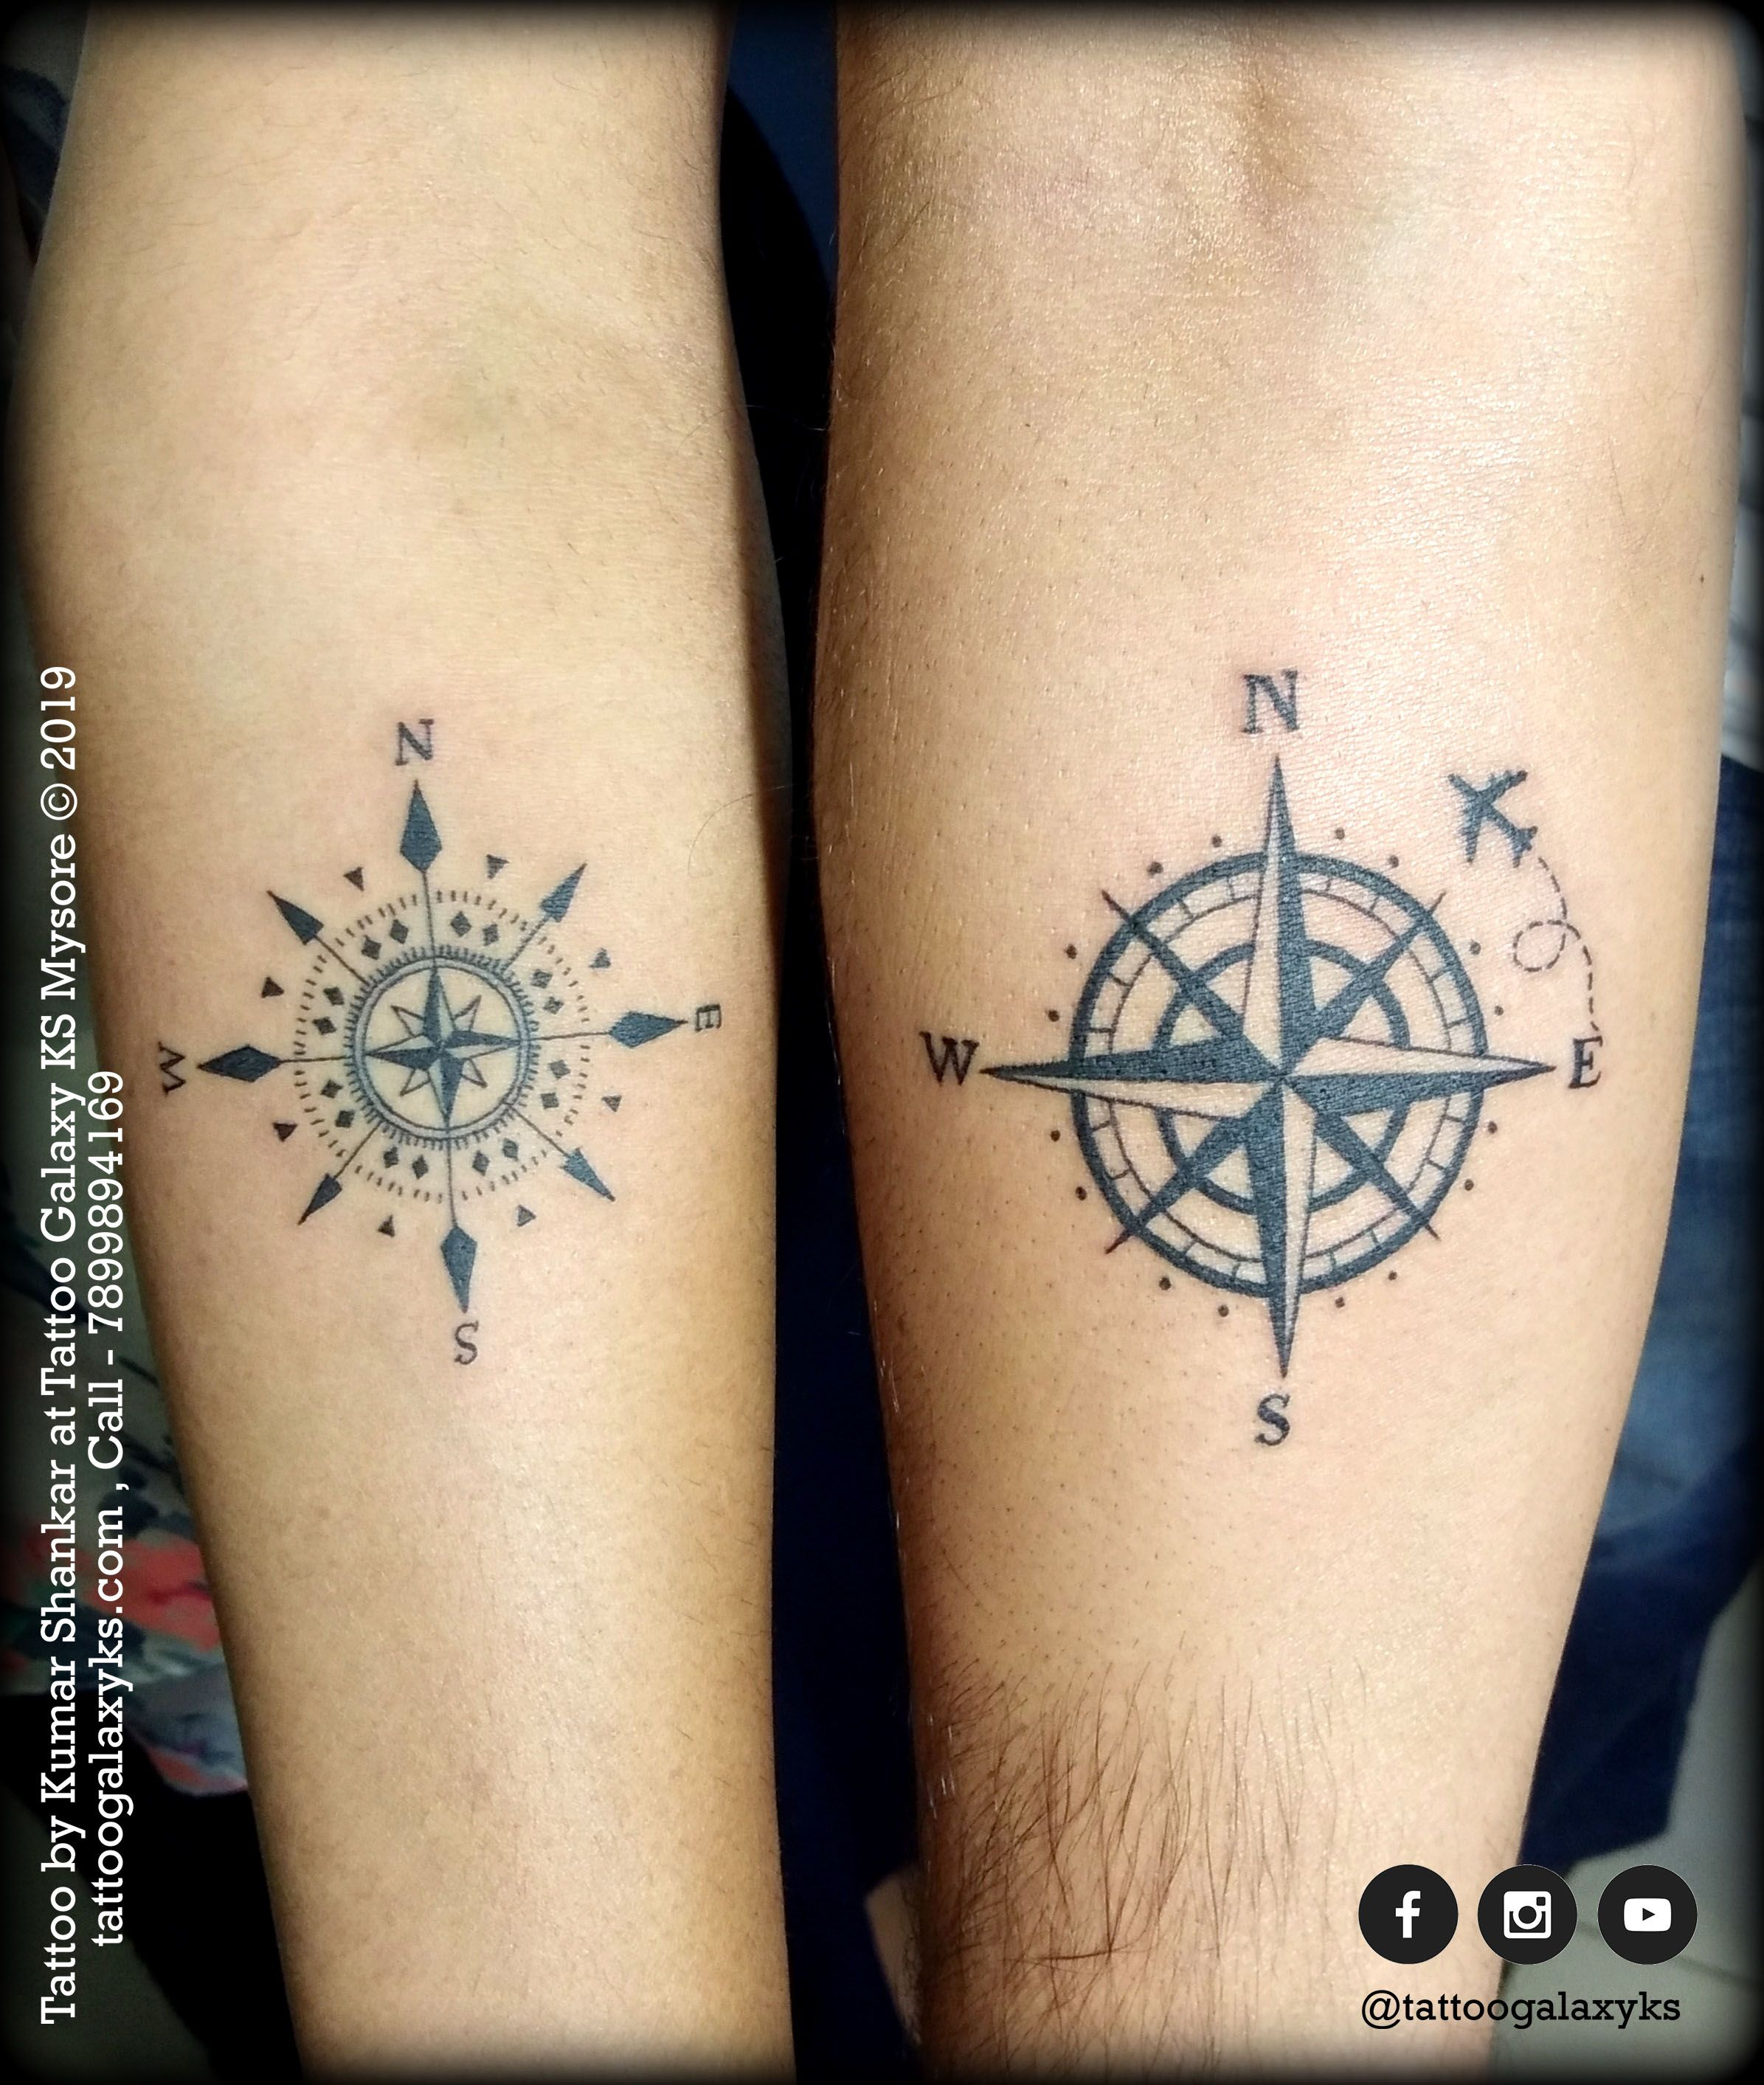 Couple Tattoo Compass Tattoo Couple Tattoos Tattoos